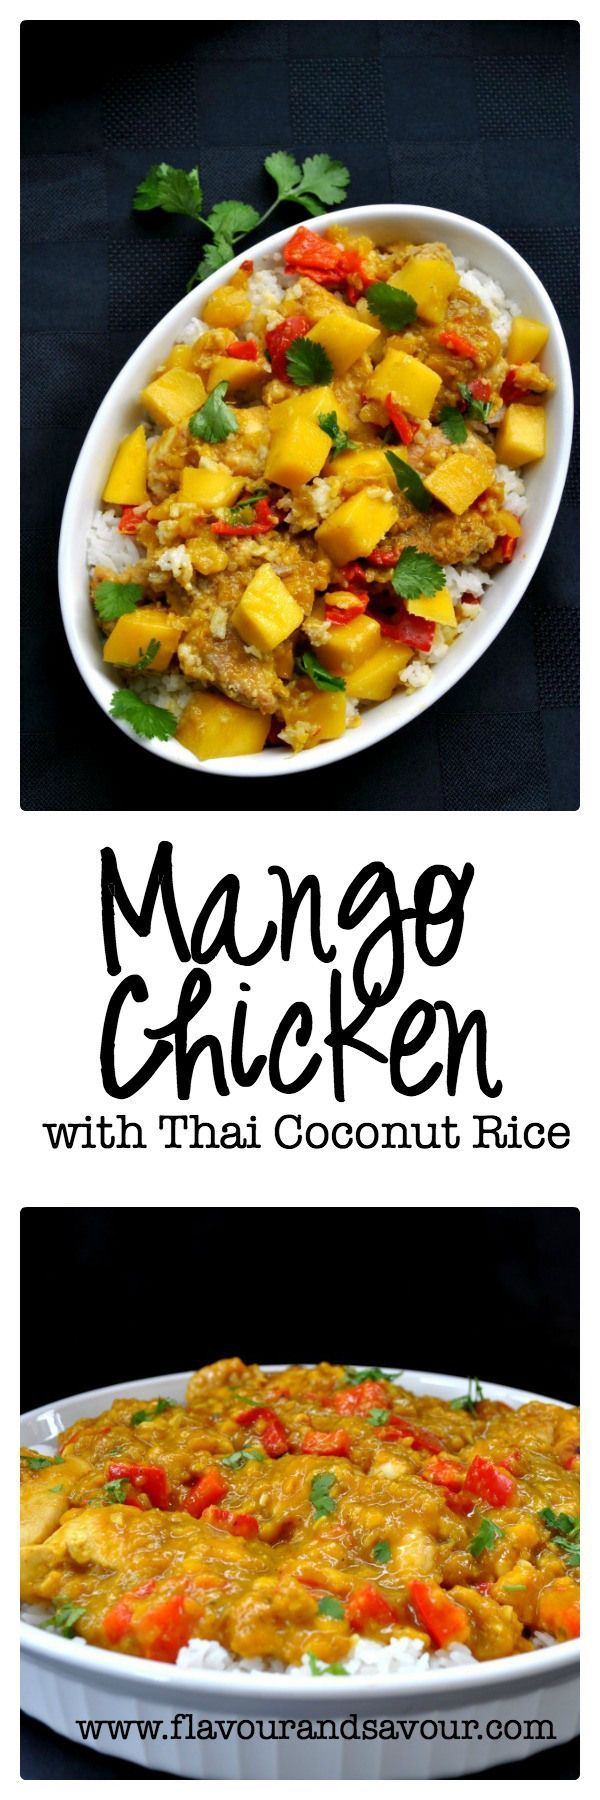 Mango Chicken with Thai Coconut Rice. Everyone loves this recipe! Easy to make and freezes well too.